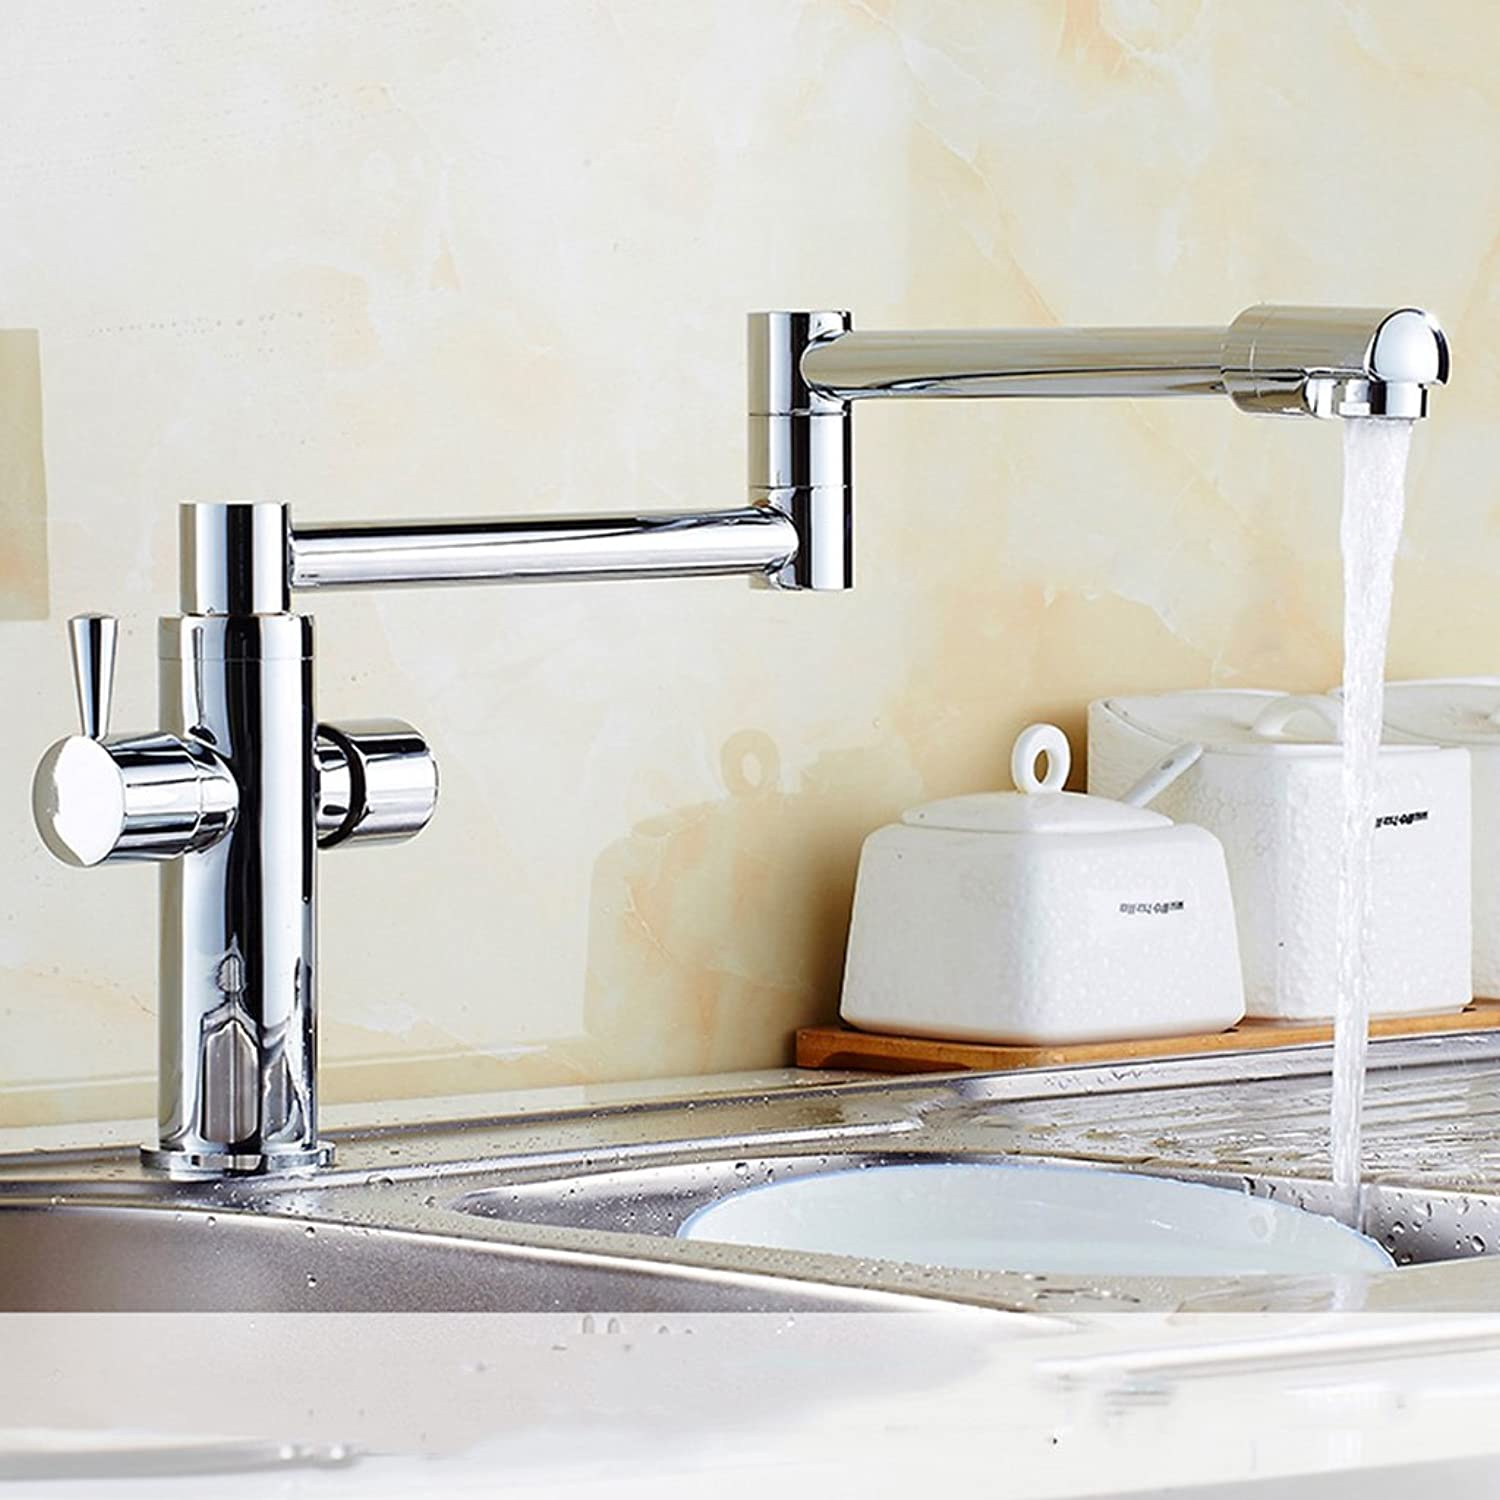 Cqq faucet gold European style Vegetables basin sink faucet redation ? Foldable copper hot and cold scalable faucet ( color   Silver )